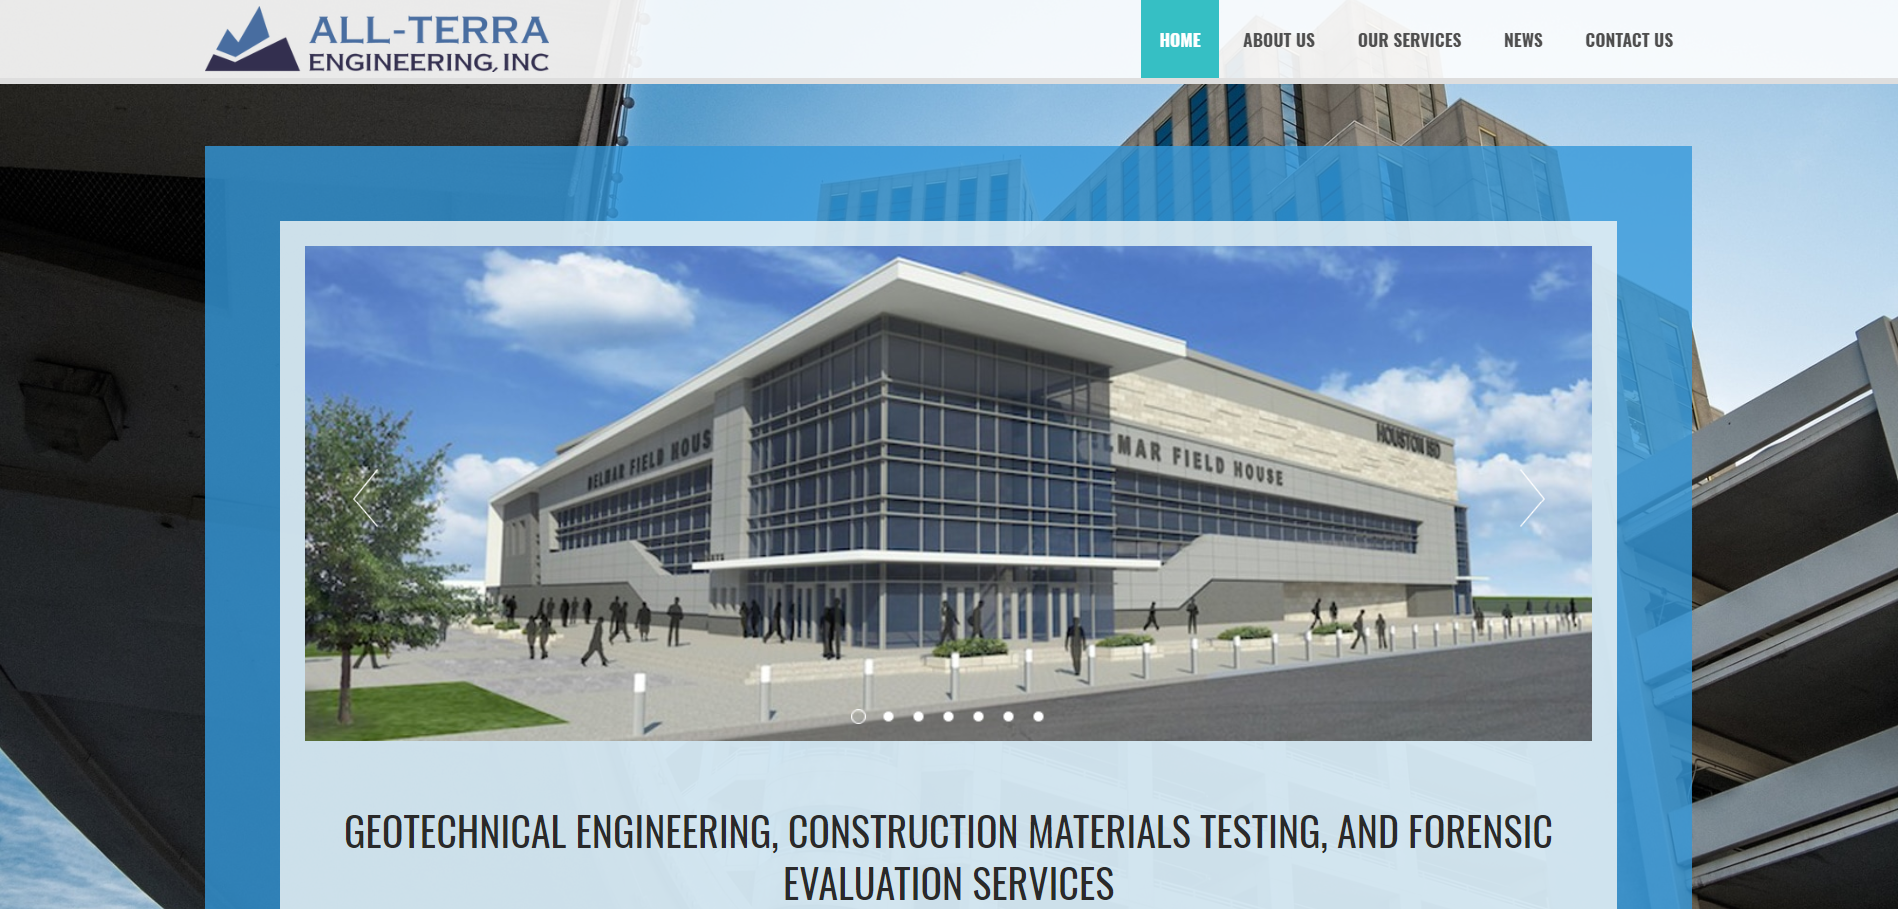 All Terra Engineering Houston